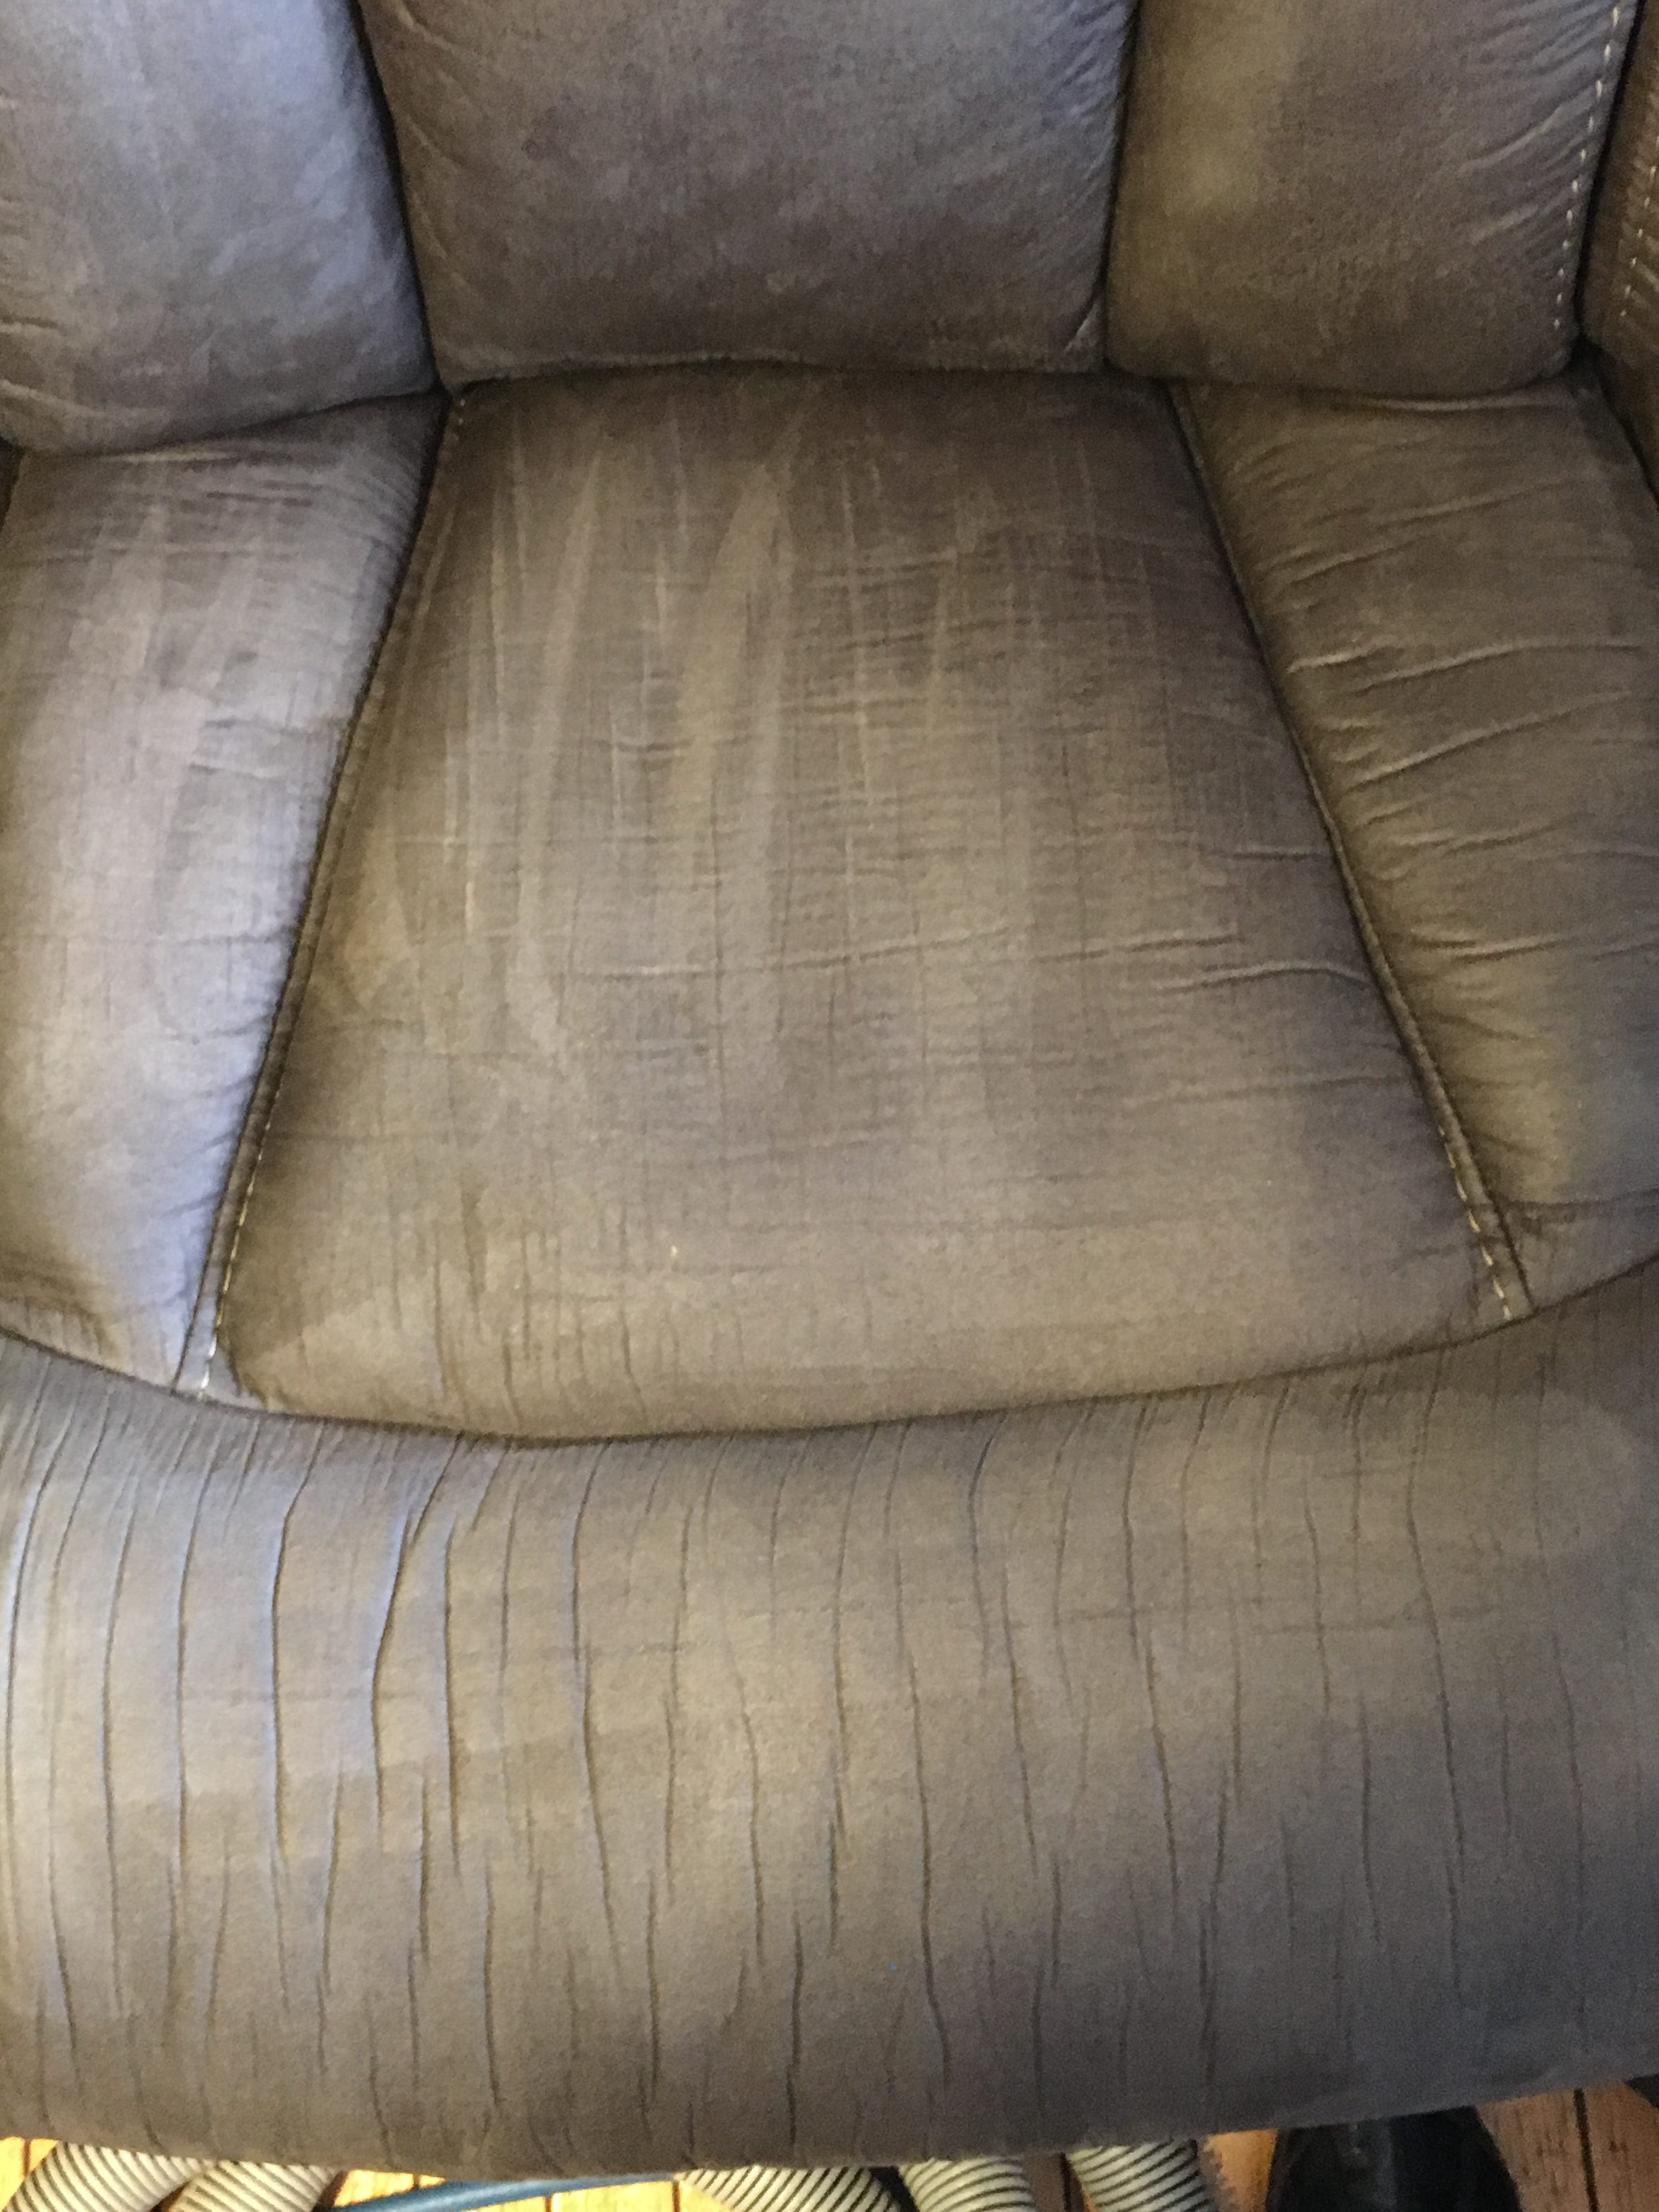 Upholstery Cleaning – After